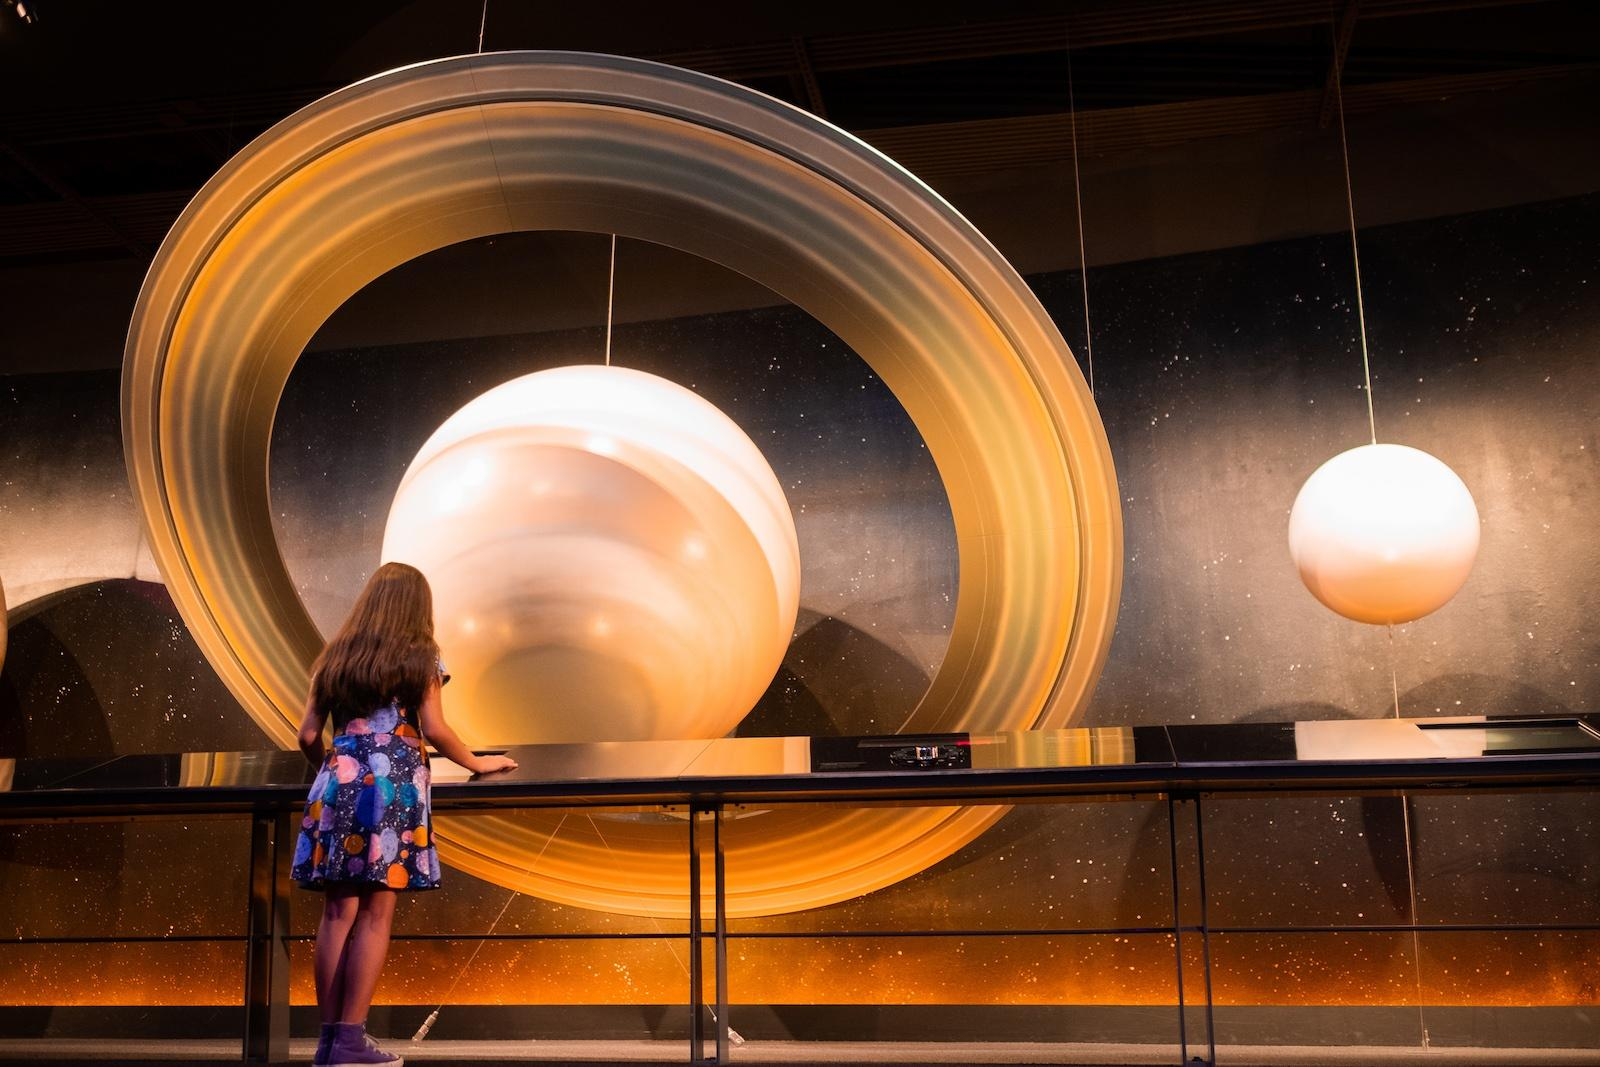 Child stands before large planet display in museum